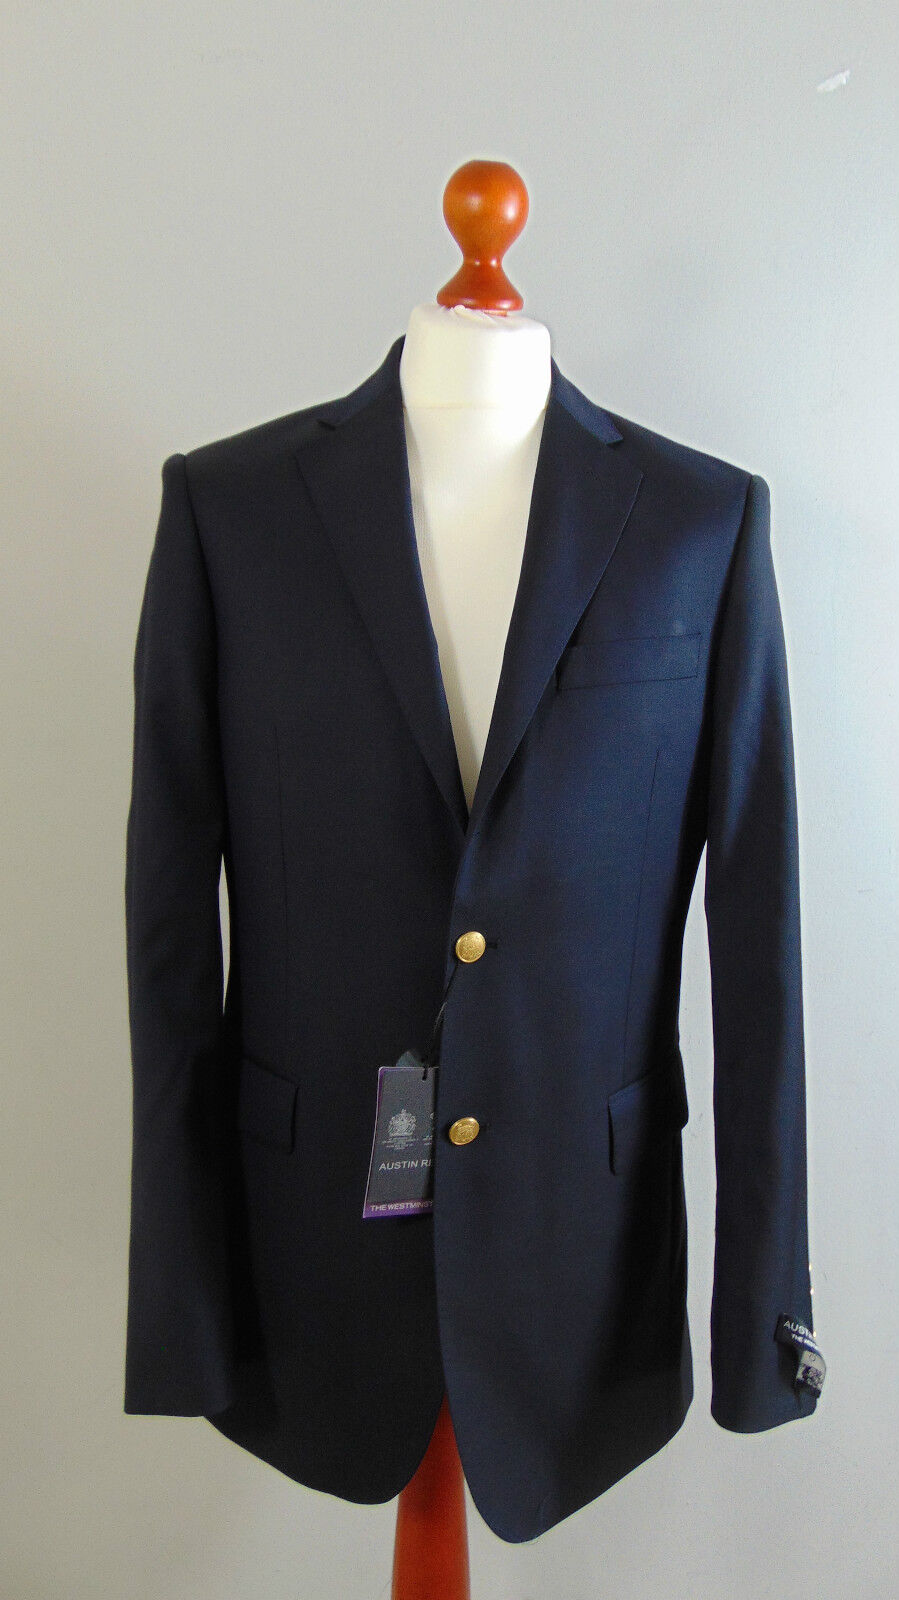 Austin Reed Mens Navy Admirals Sailors Single Breasted Suit Blazer Jacket 40l For Sale Online Ebay